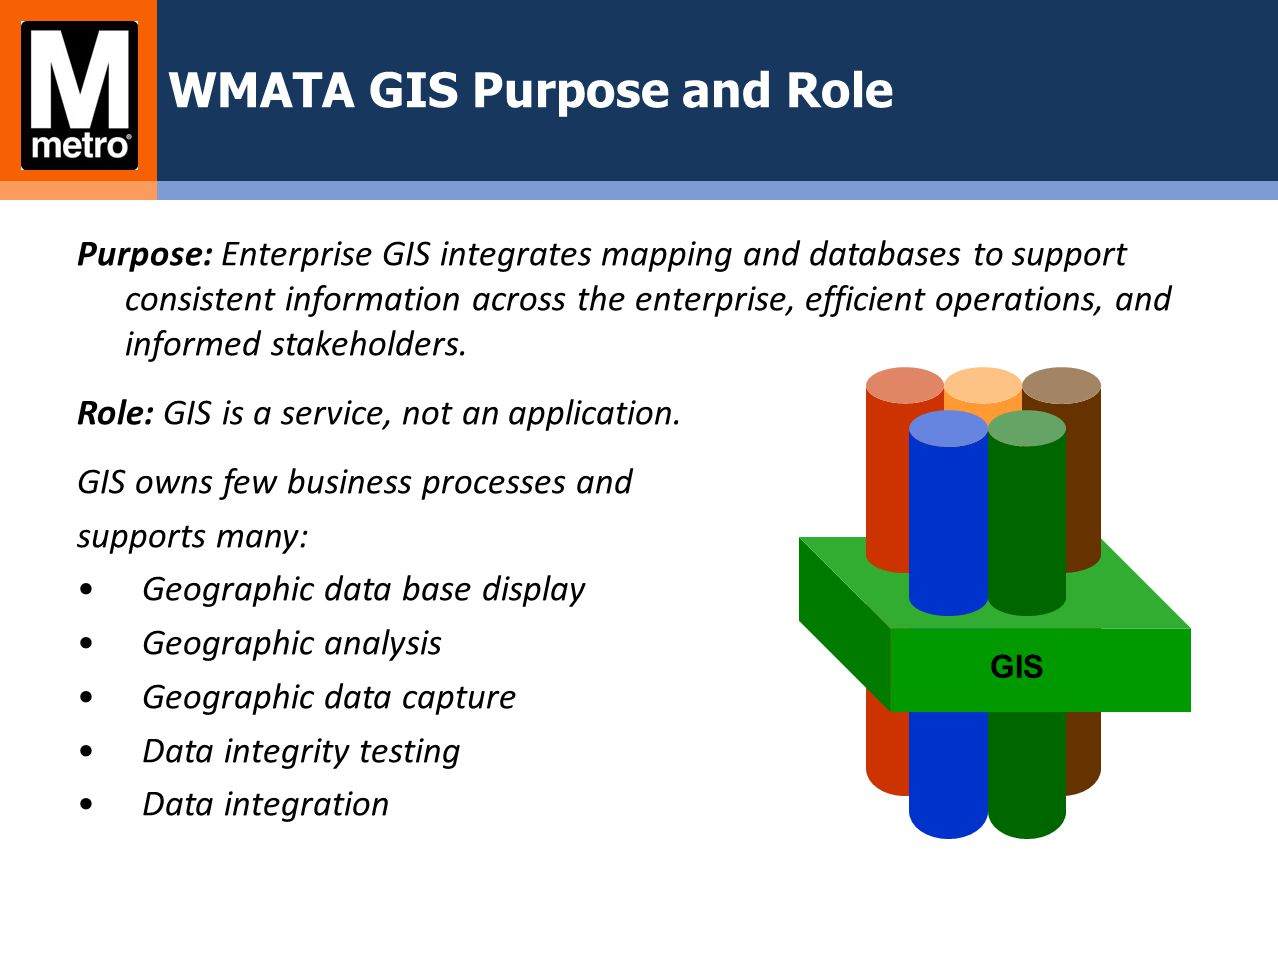 IT Span of GIS Software – ESRI ArcGIS 9.3.1 (upgrading to 10 this year) Hardware – Production, staging, dev environments; education and map production environments – Managed storage (SAN and NAS) Applications Data Integration – Maximo and Trapeze in progress Web services – Agency-wide intranet viewer Business processes User support